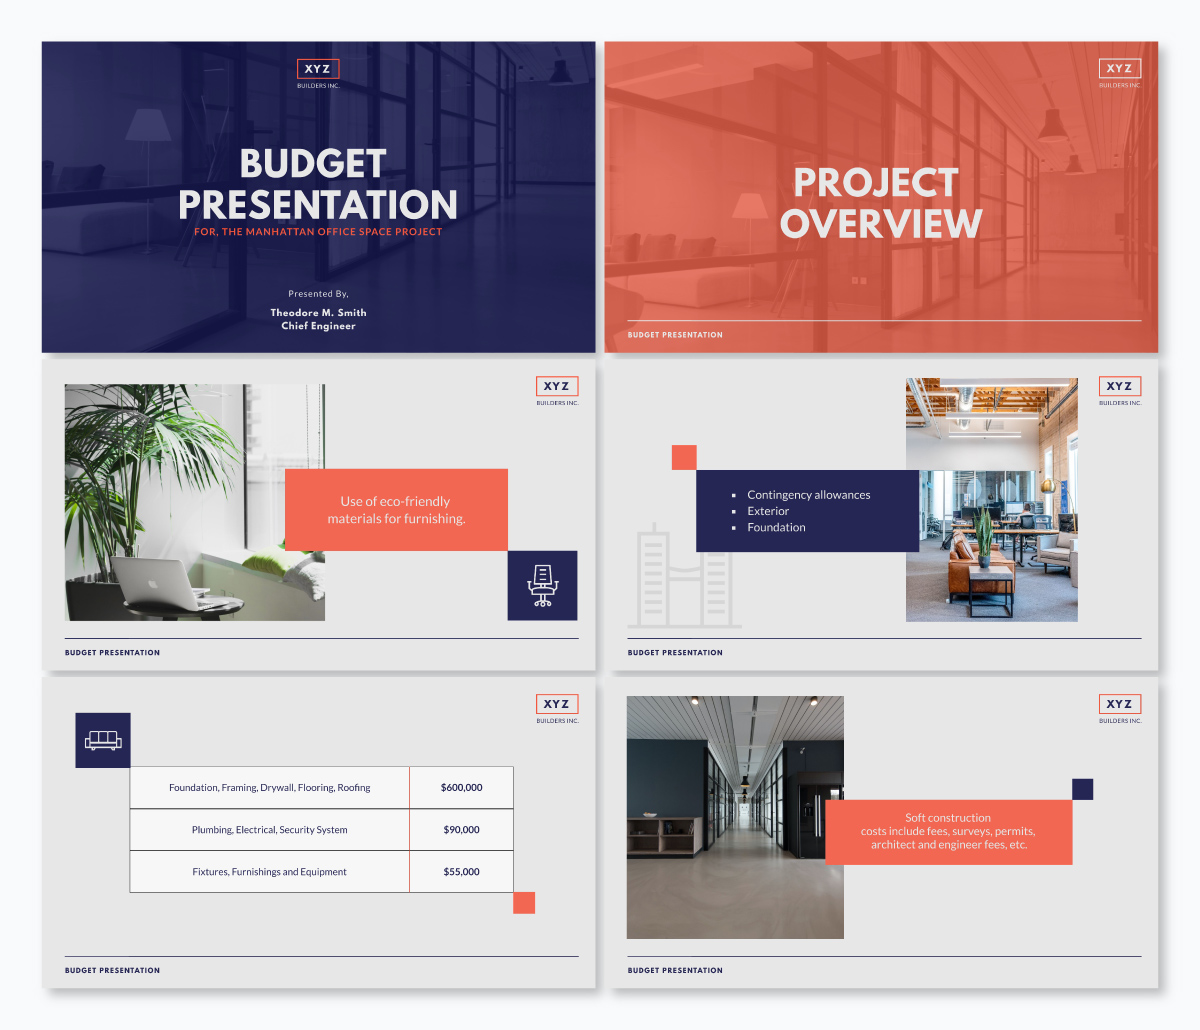 A construction budget presentation template available in Visme.